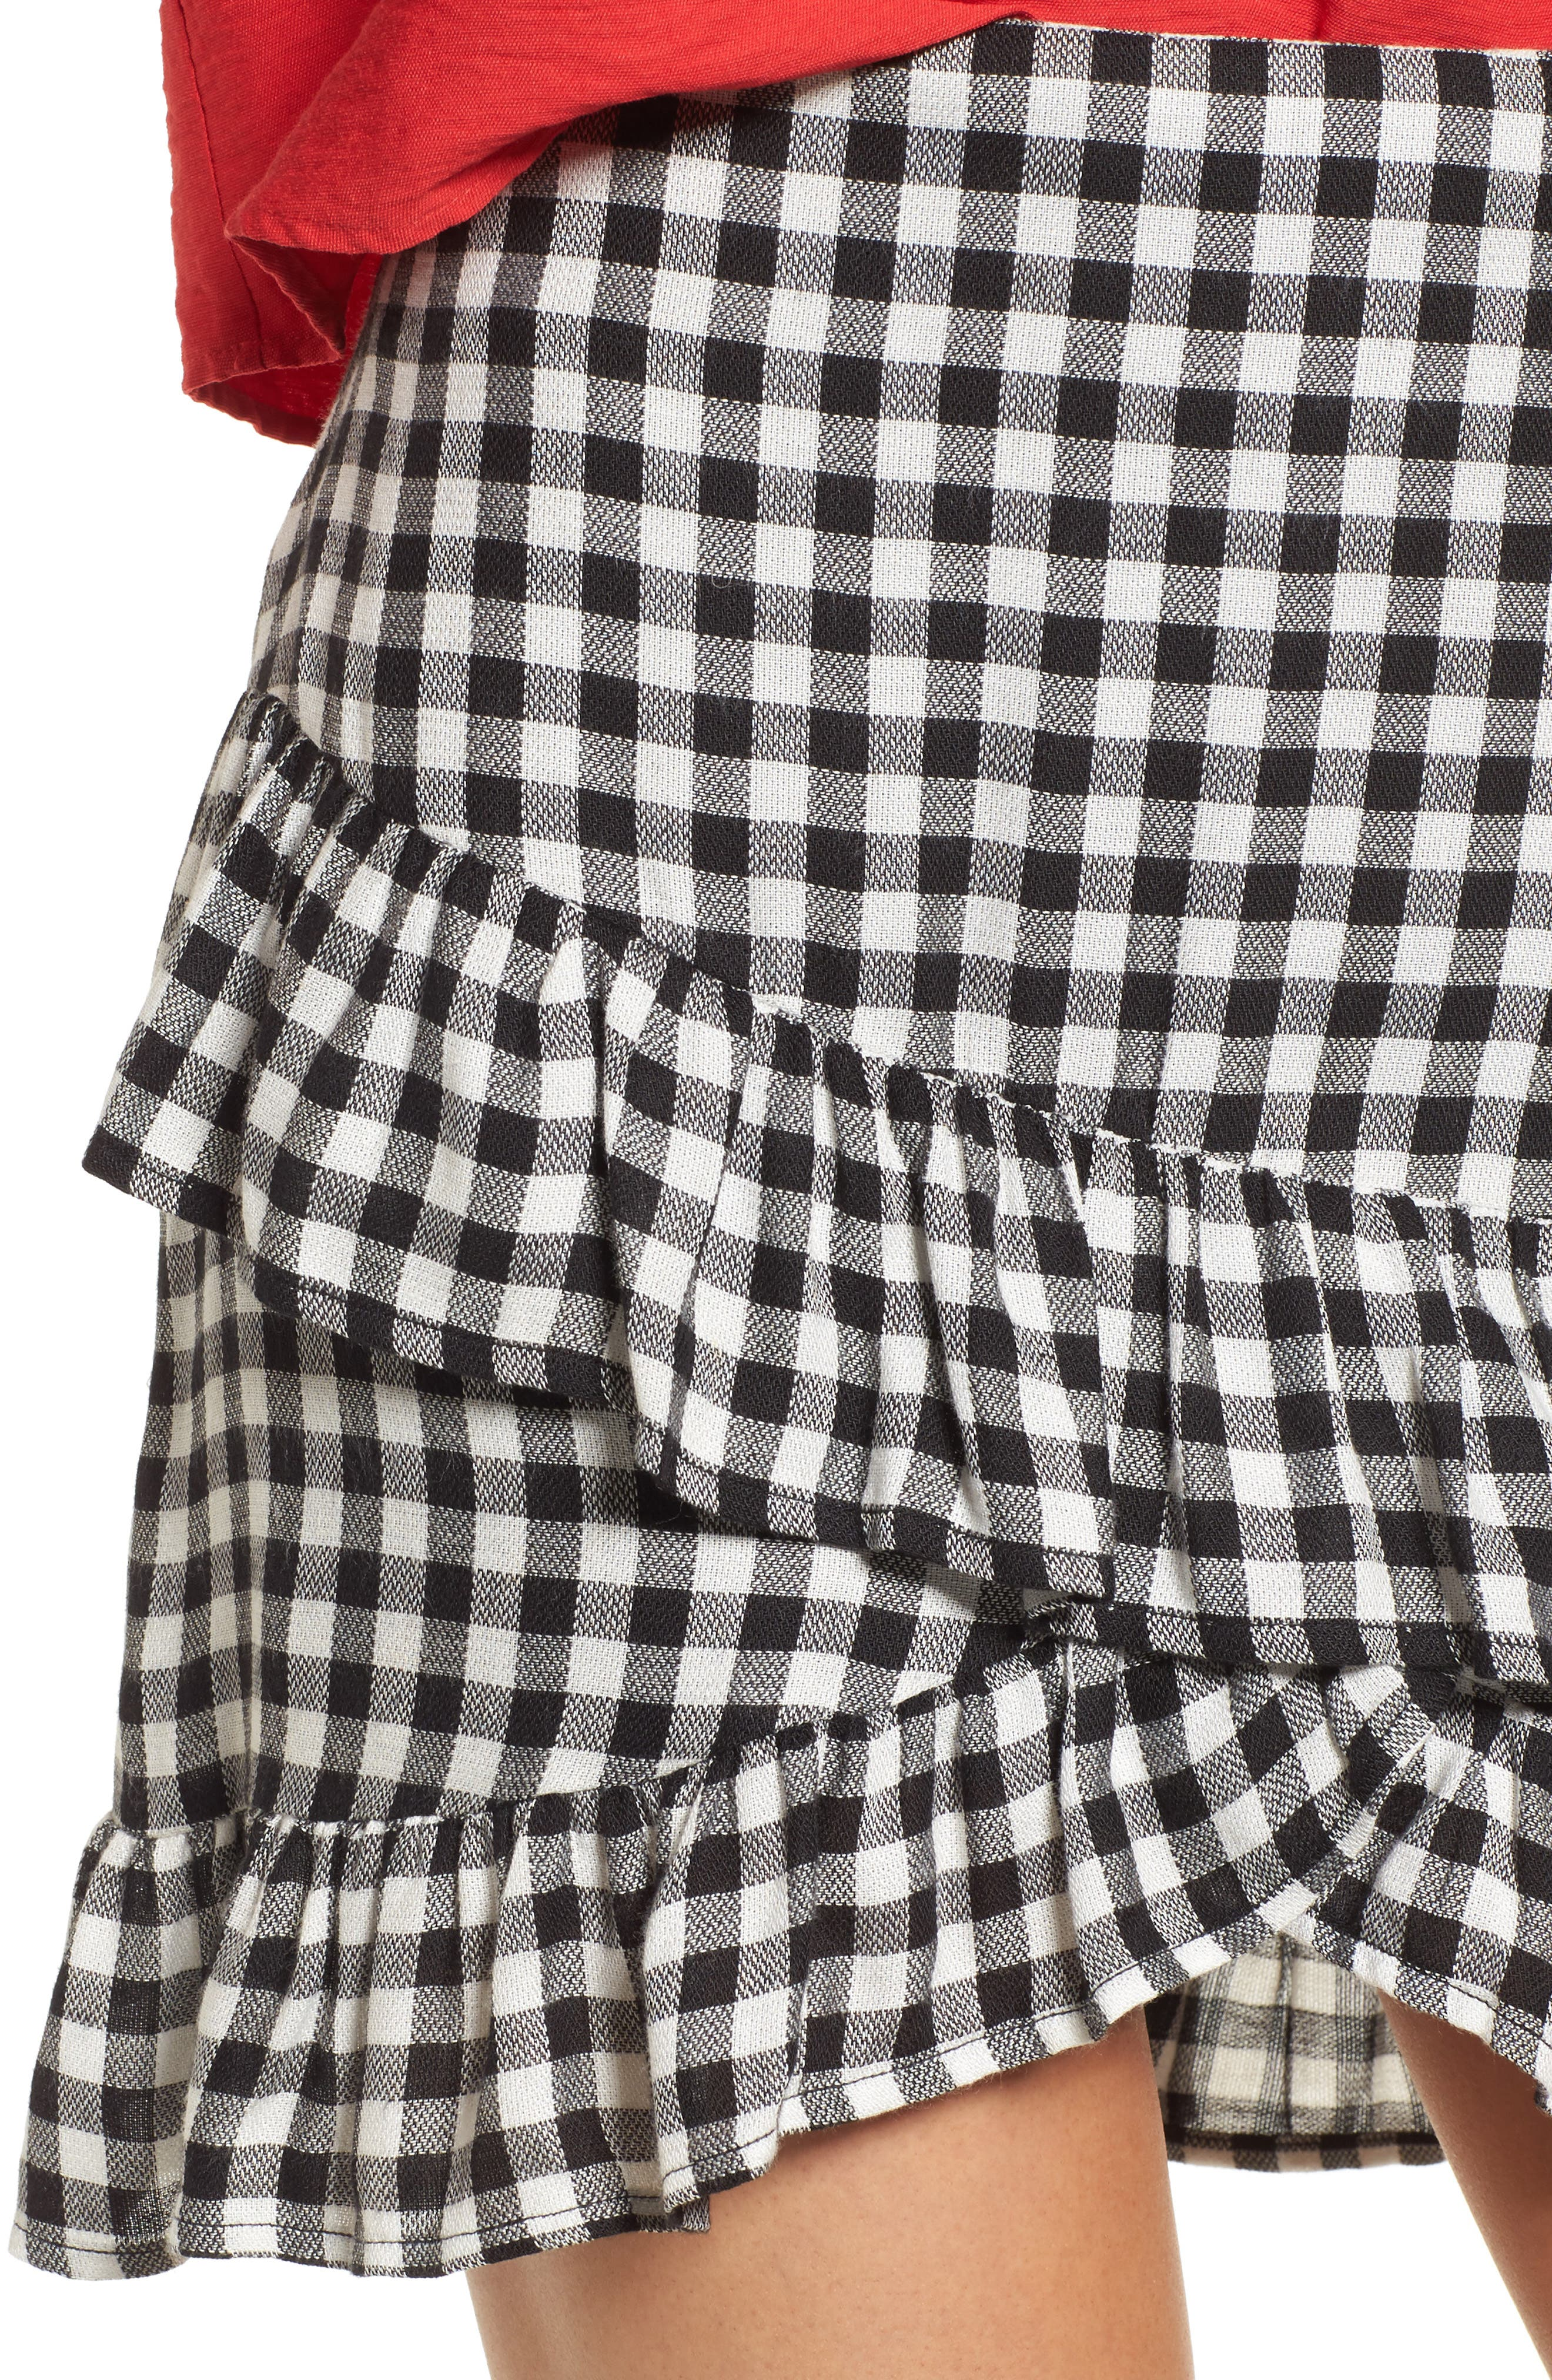 Day Trip Gingham Ruffle Skirt,                             Alternate thumbnail 4, color,                             003